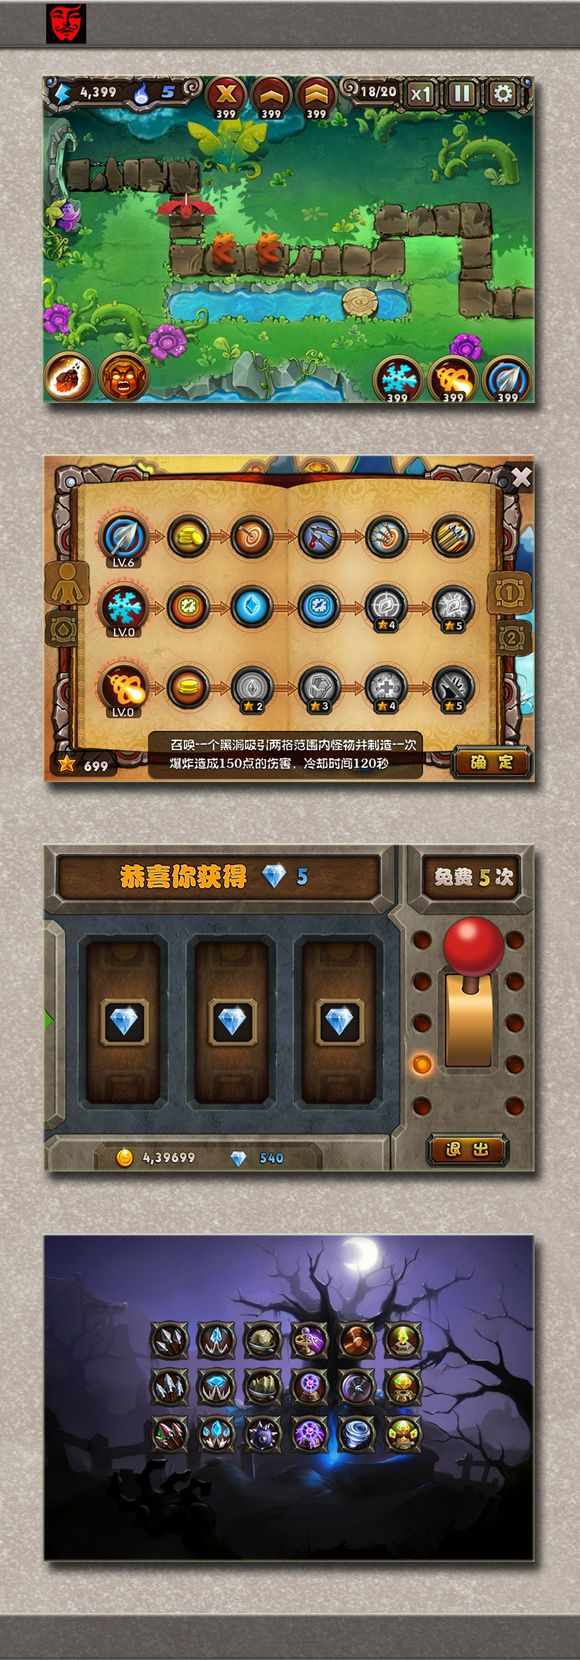 Tower Defense game interface - Game UI -GUI by ghosts